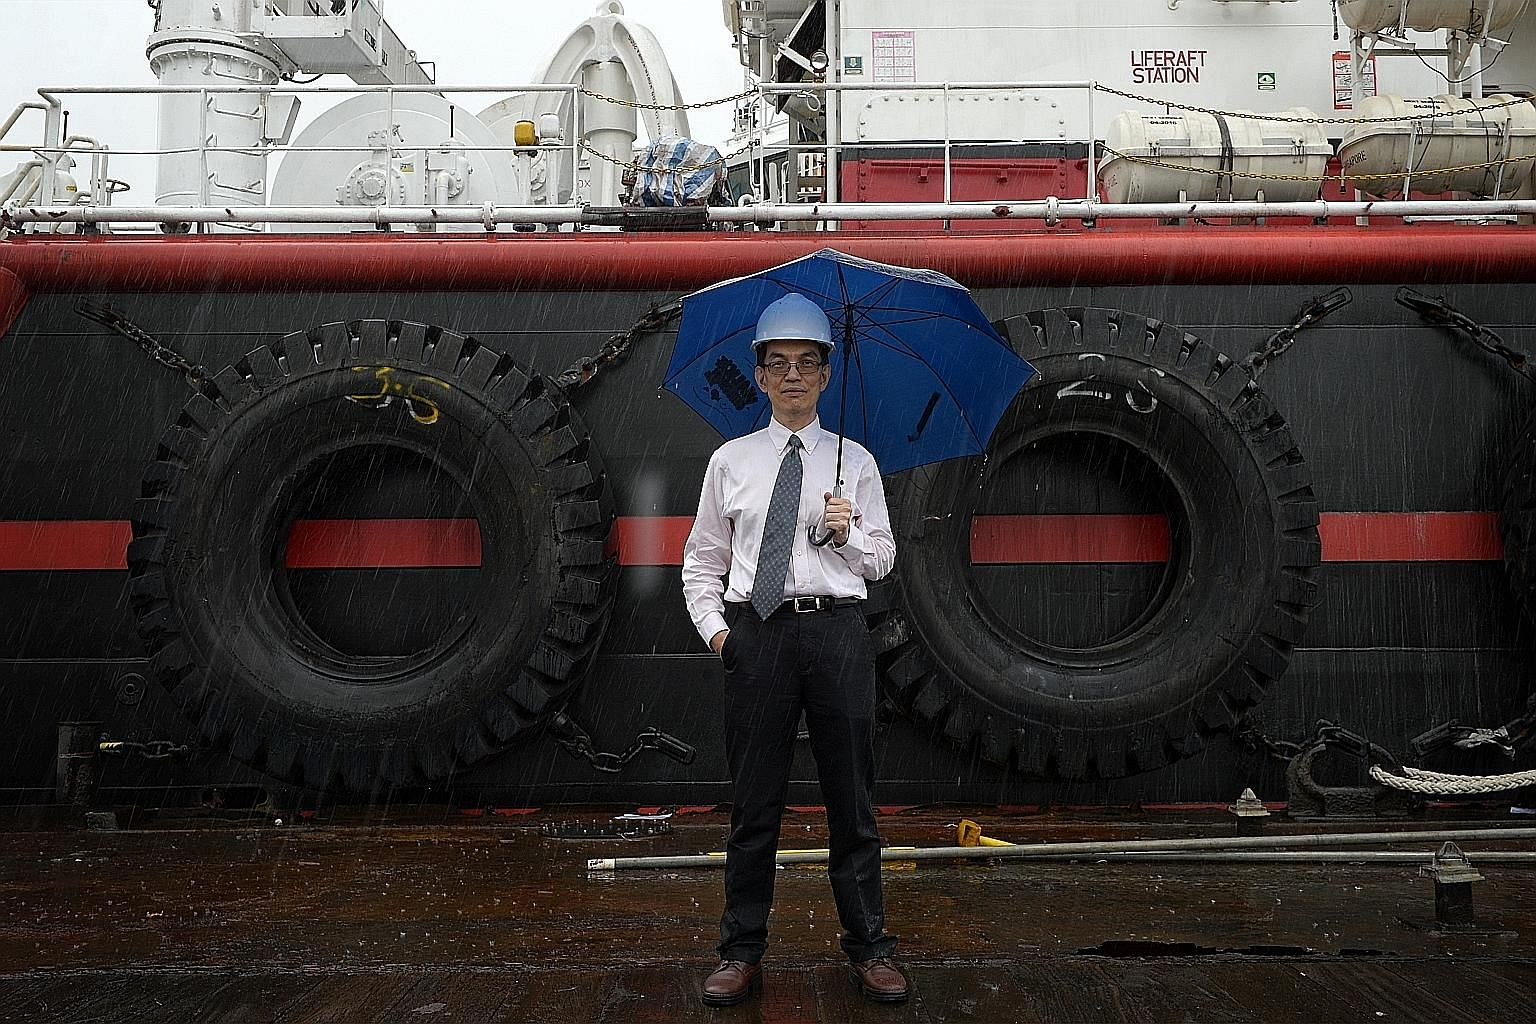 Mr Chan, Berlitz Offshore & Marine Group CEO, said the firm is doing all it can to cope with the downturn - including providing perks to meet client demands, even if it means pushing up its offshore operating expenses. The privately-owned outfit saw